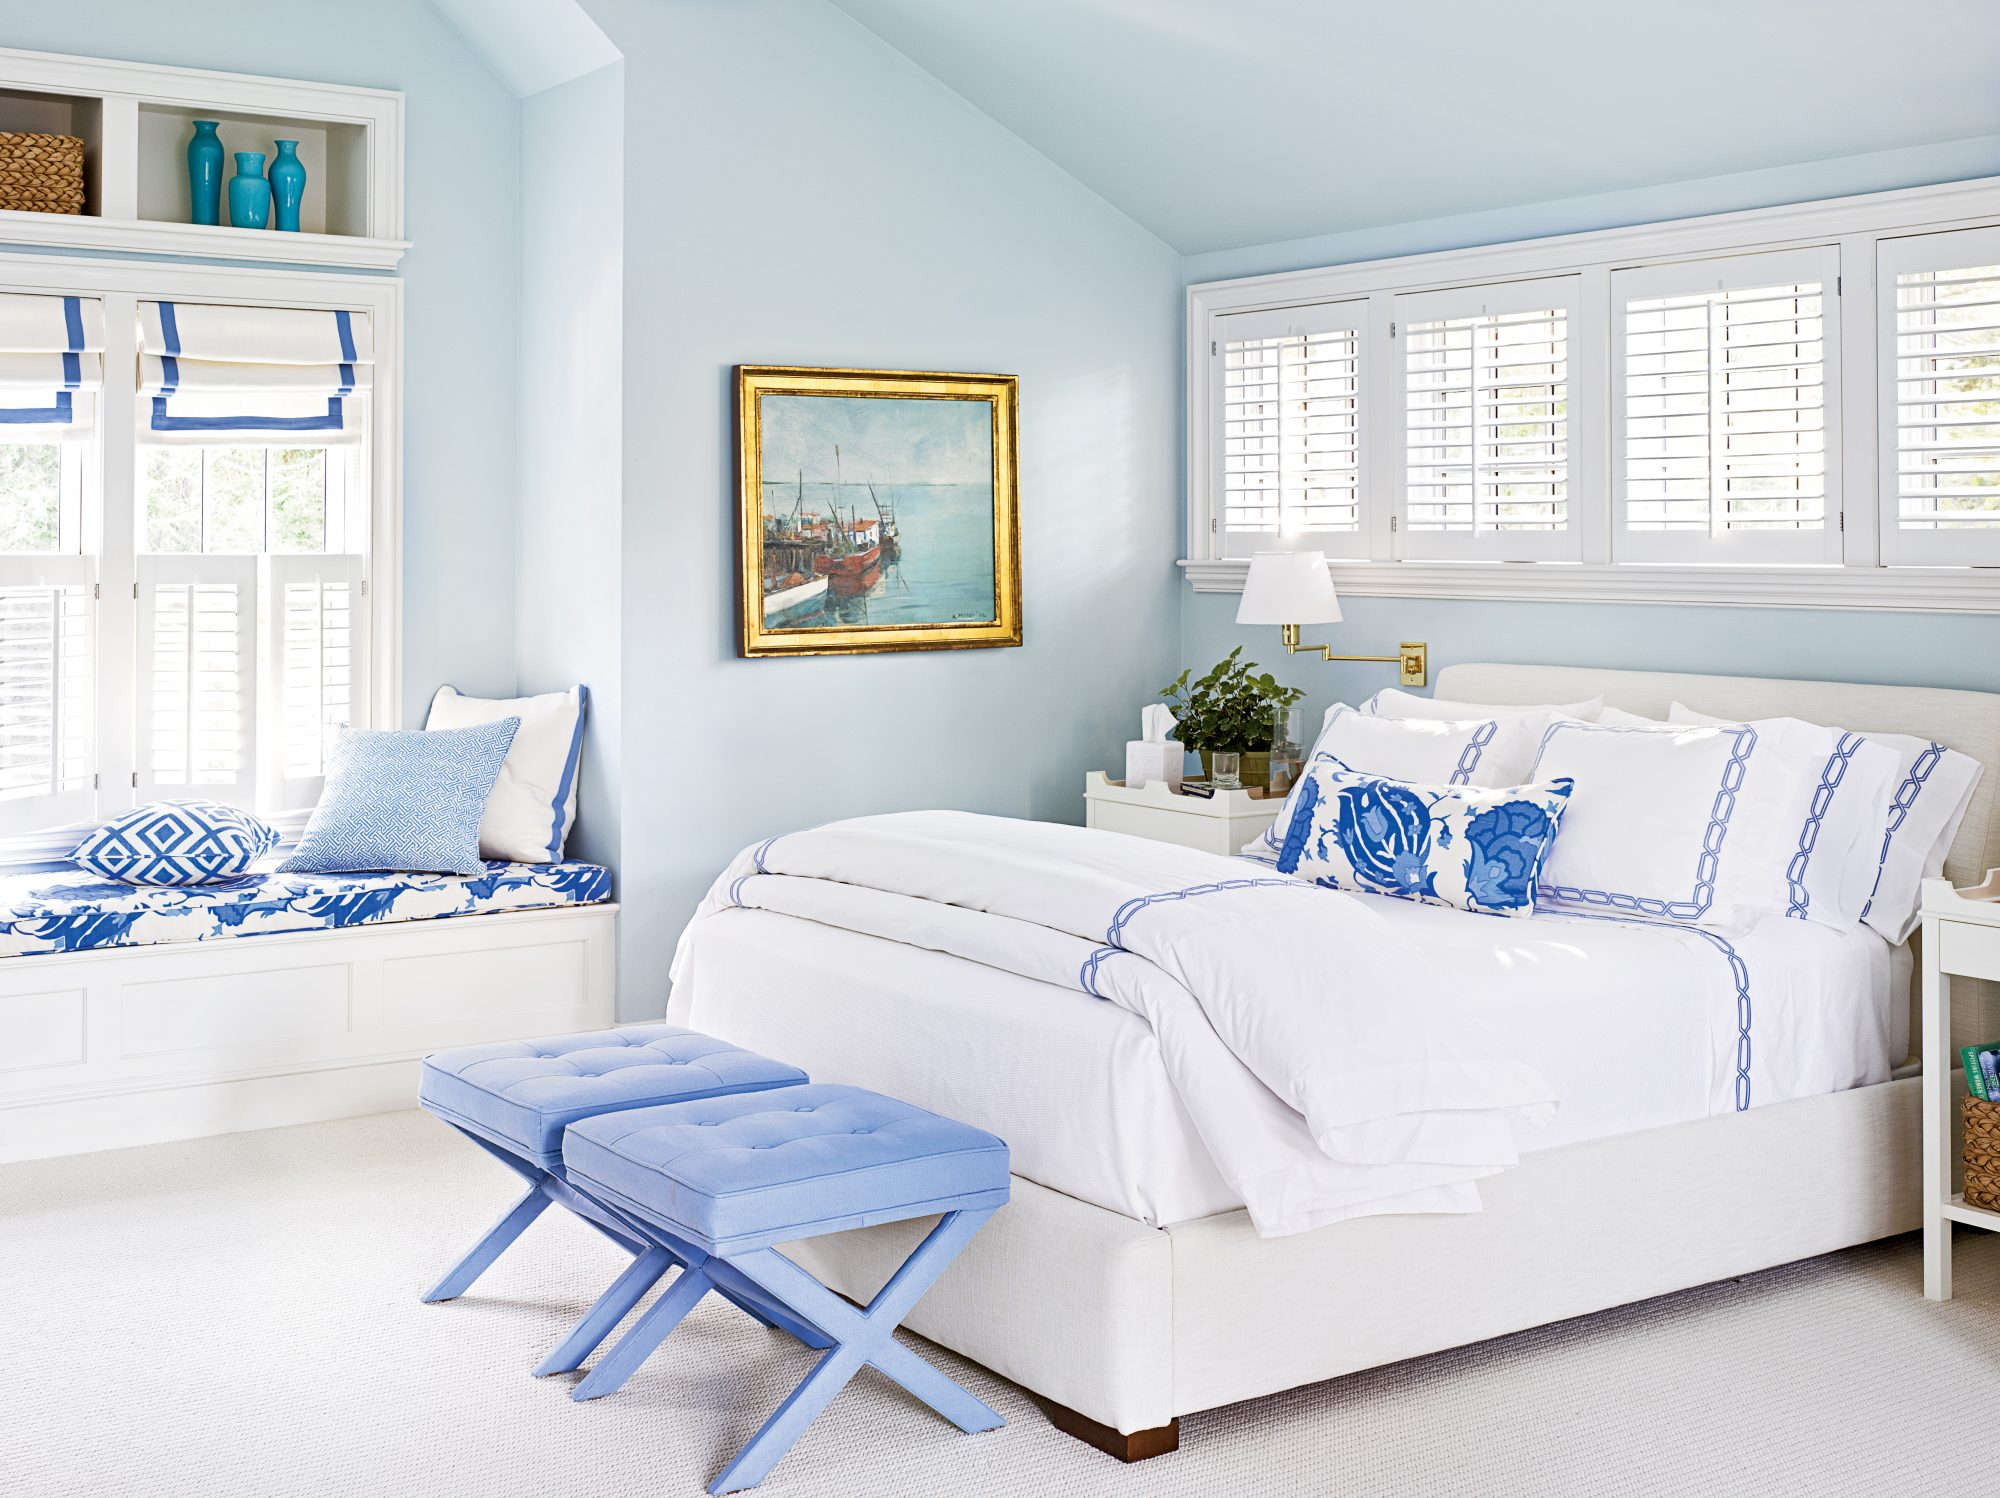 In the master bedroom of this Manchester-by-the-Sea, Massachusetts, beach house, designer Lynn Morgan set a soothing mood with a monochromatic palette of soft blues. The walls are pale aqua (painted Benjamin Moore's Sweet Bluette), while the fabrics,